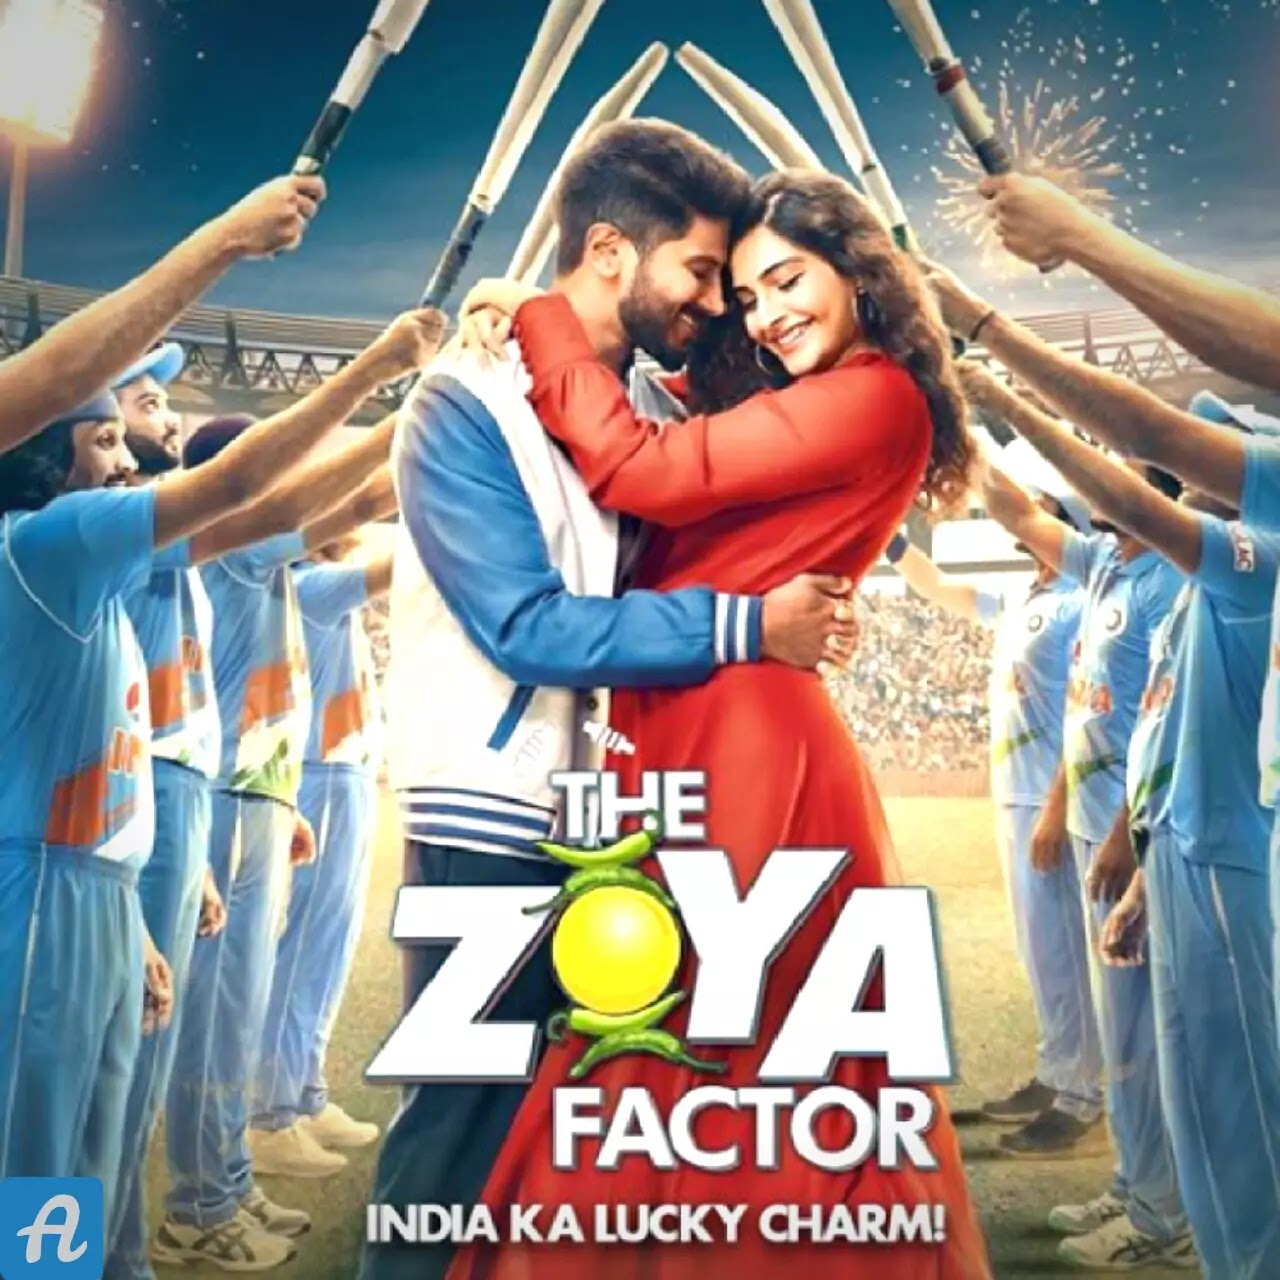 the zoya factor,zoya factor movie,the zoya factor review,the zoya factor movie review,zoya factor,the zoya factor trailer,zoya factor trailer,the zoya factor public review,the luck factor,abhishek sharma director zoya factor,the zoya factor movie,zoya factor movie review,the zoya factor trailer review,zoya factor review,the zoya factor full movie,the zoya factor songsDirector: Abhishek SharmaBox office:  est. ₹6.91 crore (worldwide)  Based on: The Zoya Factor; by Anuja Chauhan  Budget: ₹30crore  Release date: September 19, 2019Box office: est. ₹6.91 crore (worldwide) Based on: The Zoya Factor; by Anuja Chauhan Budget: ₹30crore Release date: September 19, 2019the zoya factor,zoya factor,zoya factor movie,zoya factor trailer,the zoya factor songs,the zoya factor review,the zoya factor trailer,the luck factor,abhishek sharma director zoya factor,the zoya factor movie review,the zoya factor public review,the zoya factor trailer launch,the zoya factor official trailer,zoya factor review,the zoya factor trailer review,the zoya factor trailer reactionThe Zoya Factor is a 2019 Indian Urdu Hindi language romantic comedy film directed by Abhishek Sharma and produced by Fox Star Studios, Pooja Shetty and Aarrti Shetty. Starring Sonam Kapoor Ahuja and Dulquer Salmaan. Produced by: Fox Star Studios; Pooja Shetty; Aarrti Shetty Narrated by: Shah Rukh Khan Production company: Fox Star Studios; Ad-Labs Films Limited Music by: Songs: Shankar–Ehsaan–Loy; Score: Indrajit Sharma; Parikshit Sharma  The Zoya Factor Story: Conceived around the same time that India won the 1983 cricket World Cup, Zoya is considered by her family to be a four leaf clover with regards to winning matches, though crevasse cricket. In any case, when the Indian cricket the board need to sign her on as a fortunate mascot for the present group, Zoya ends up in a fix.   The Zoya Factor Survey: Zoya (Sonam Kapoor), a lesser duplicate essayist in a promotion organization is sent on an advertisement photograph shoot w